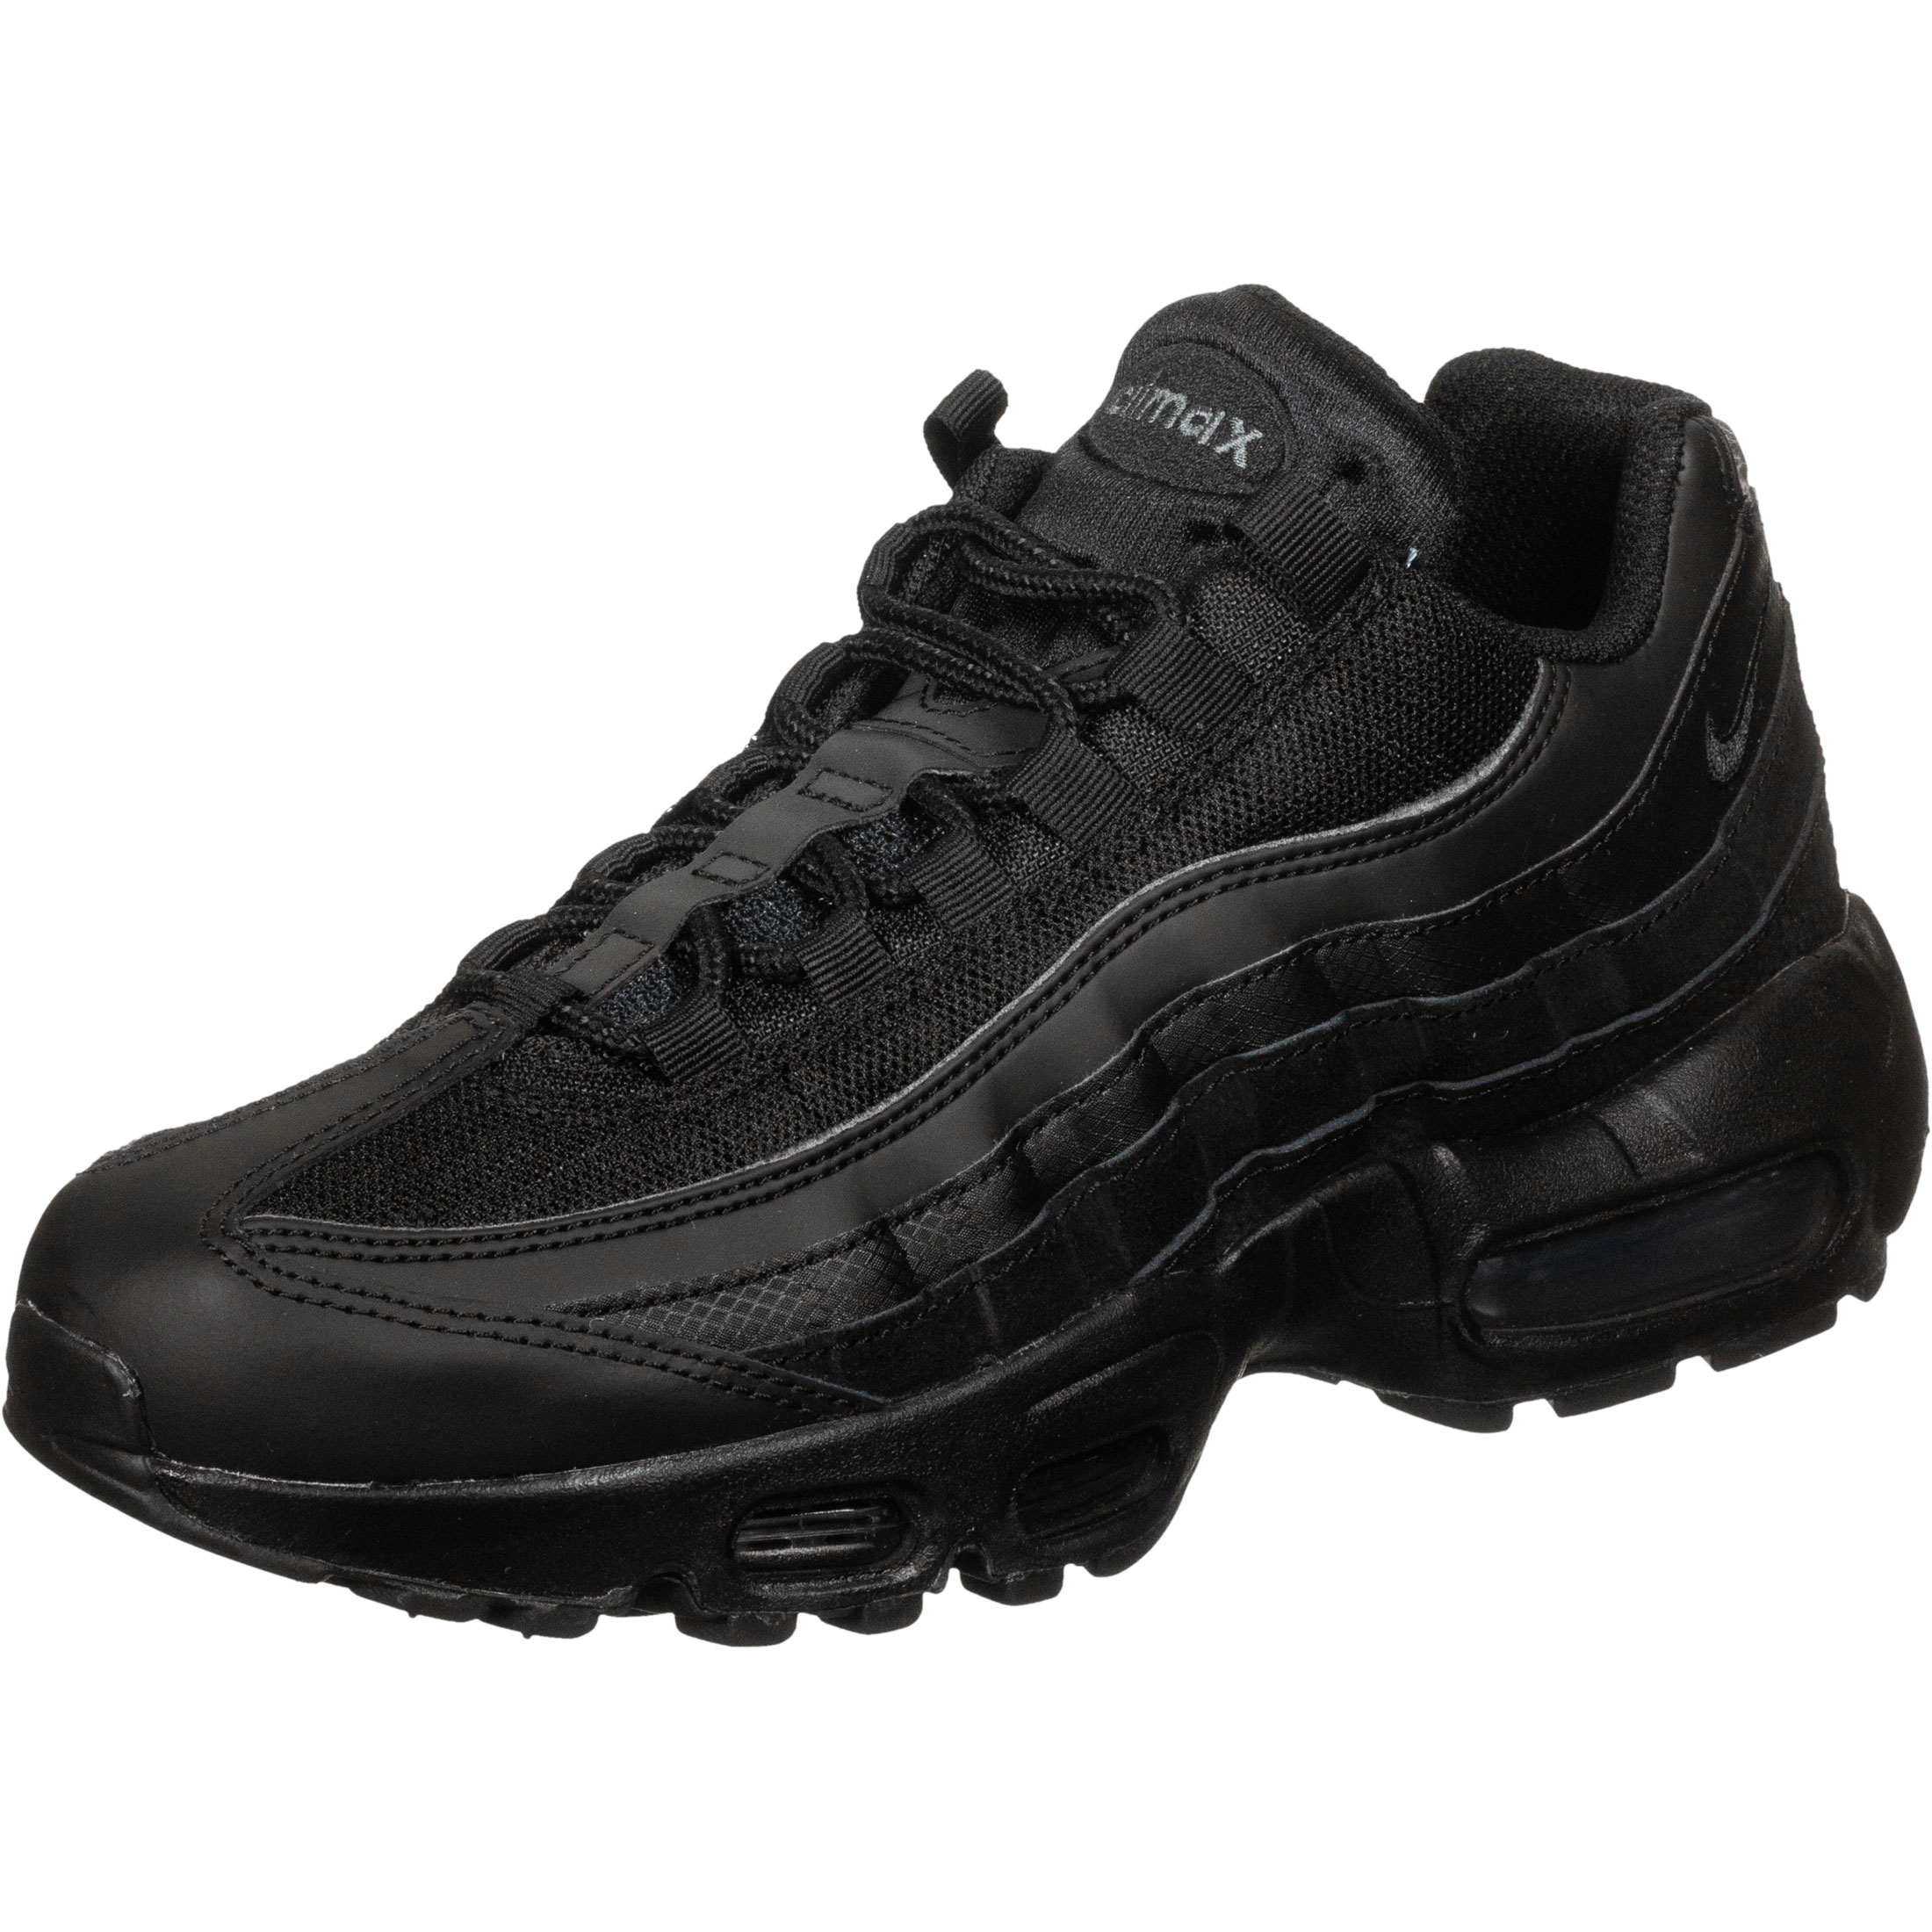 Air Max 95 Essential - Baskets low - Hommes chez Stylefile